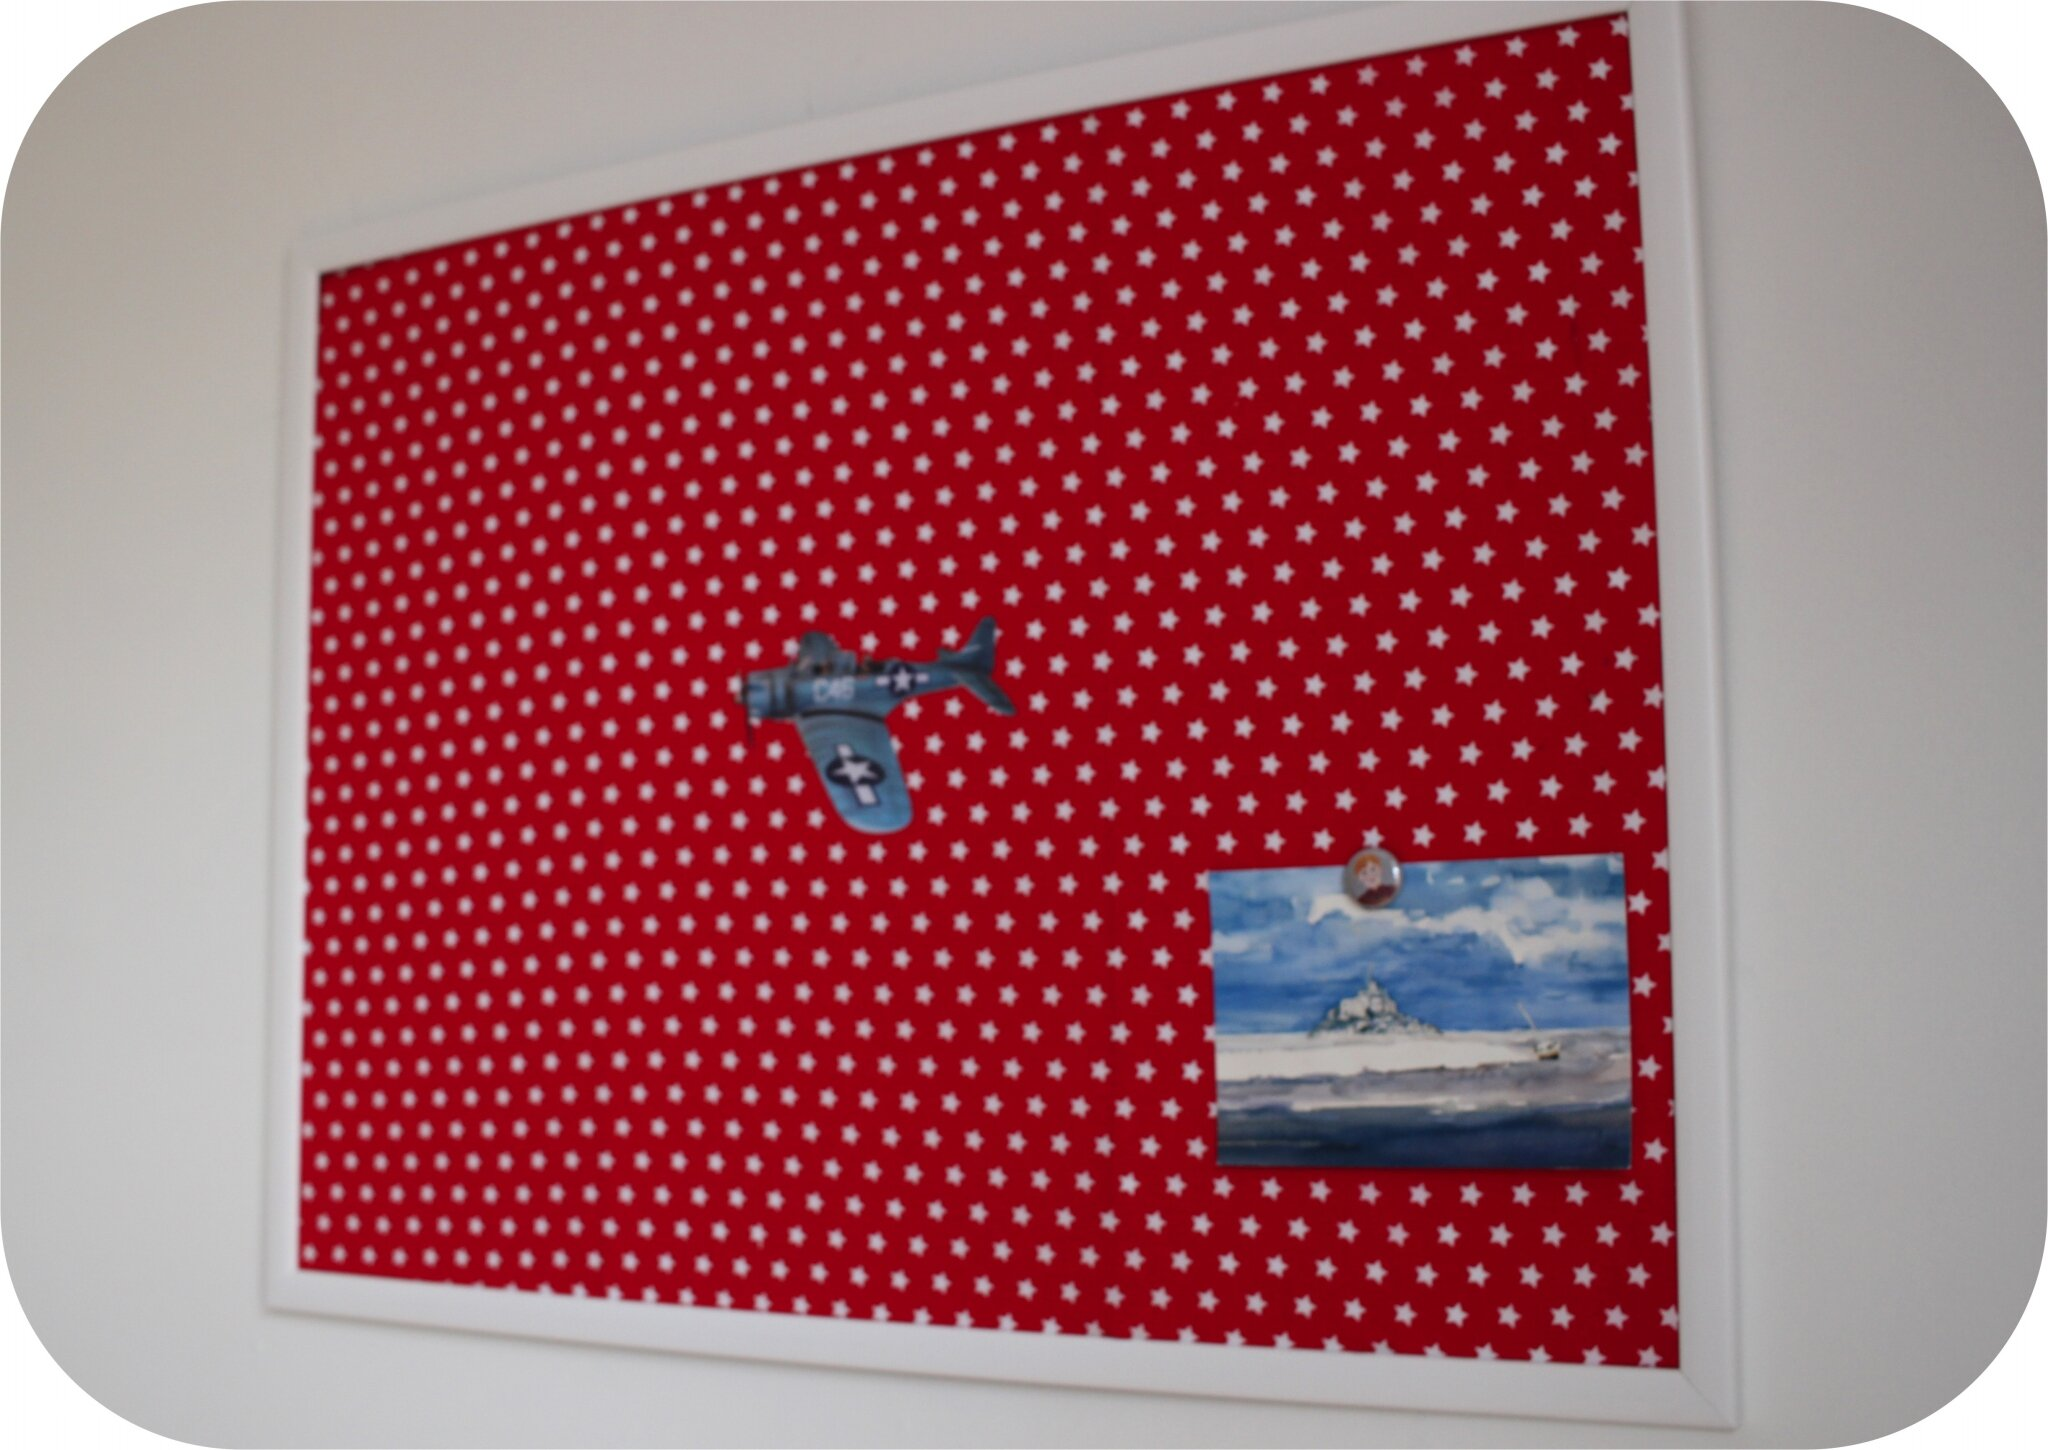 Tableau magn tique de biais photo de d co sweet and sew - Tableau magnetique photo ...